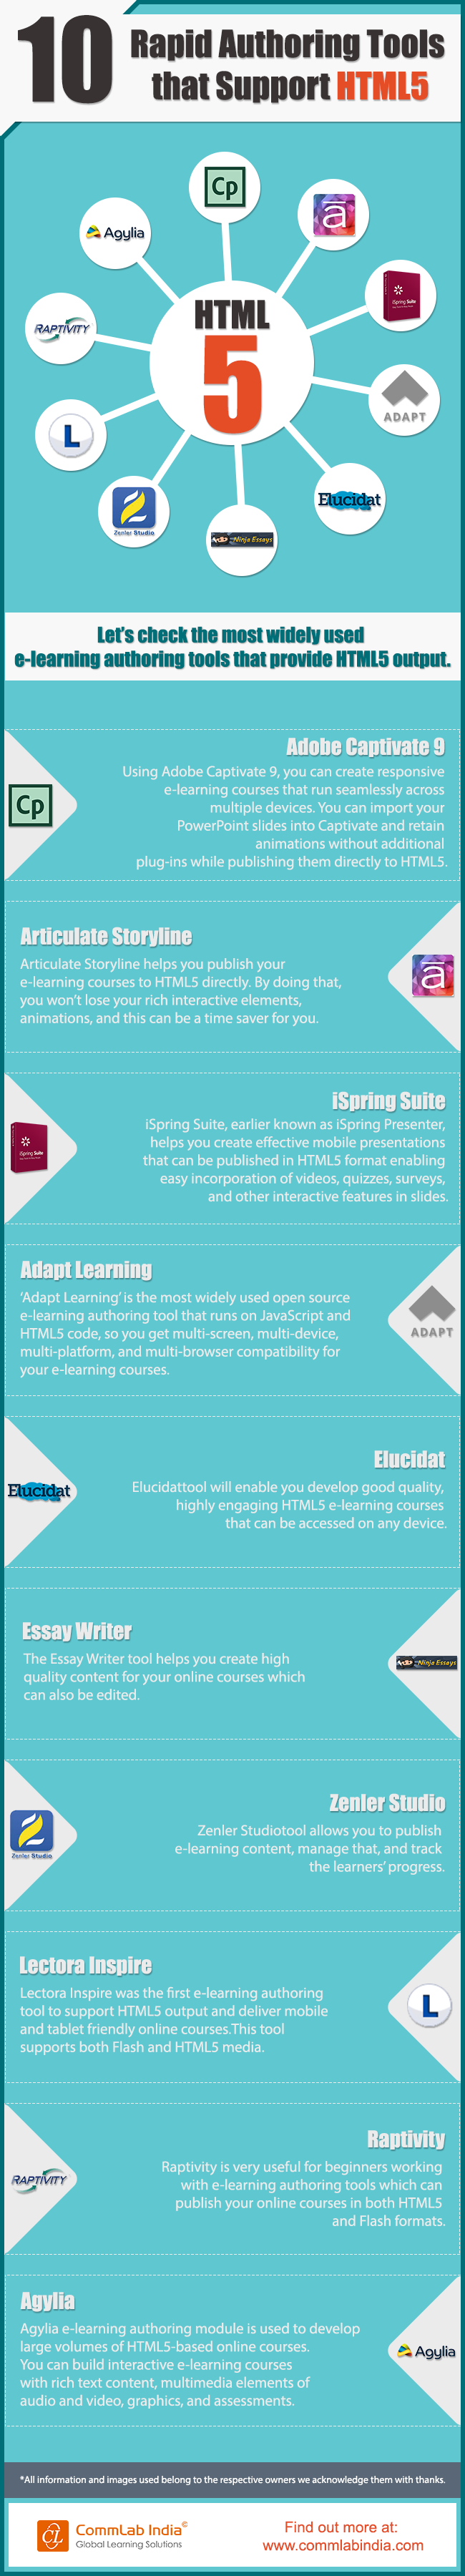 10 Rapid Authoring Tools that Support HTML5 [Infographic]